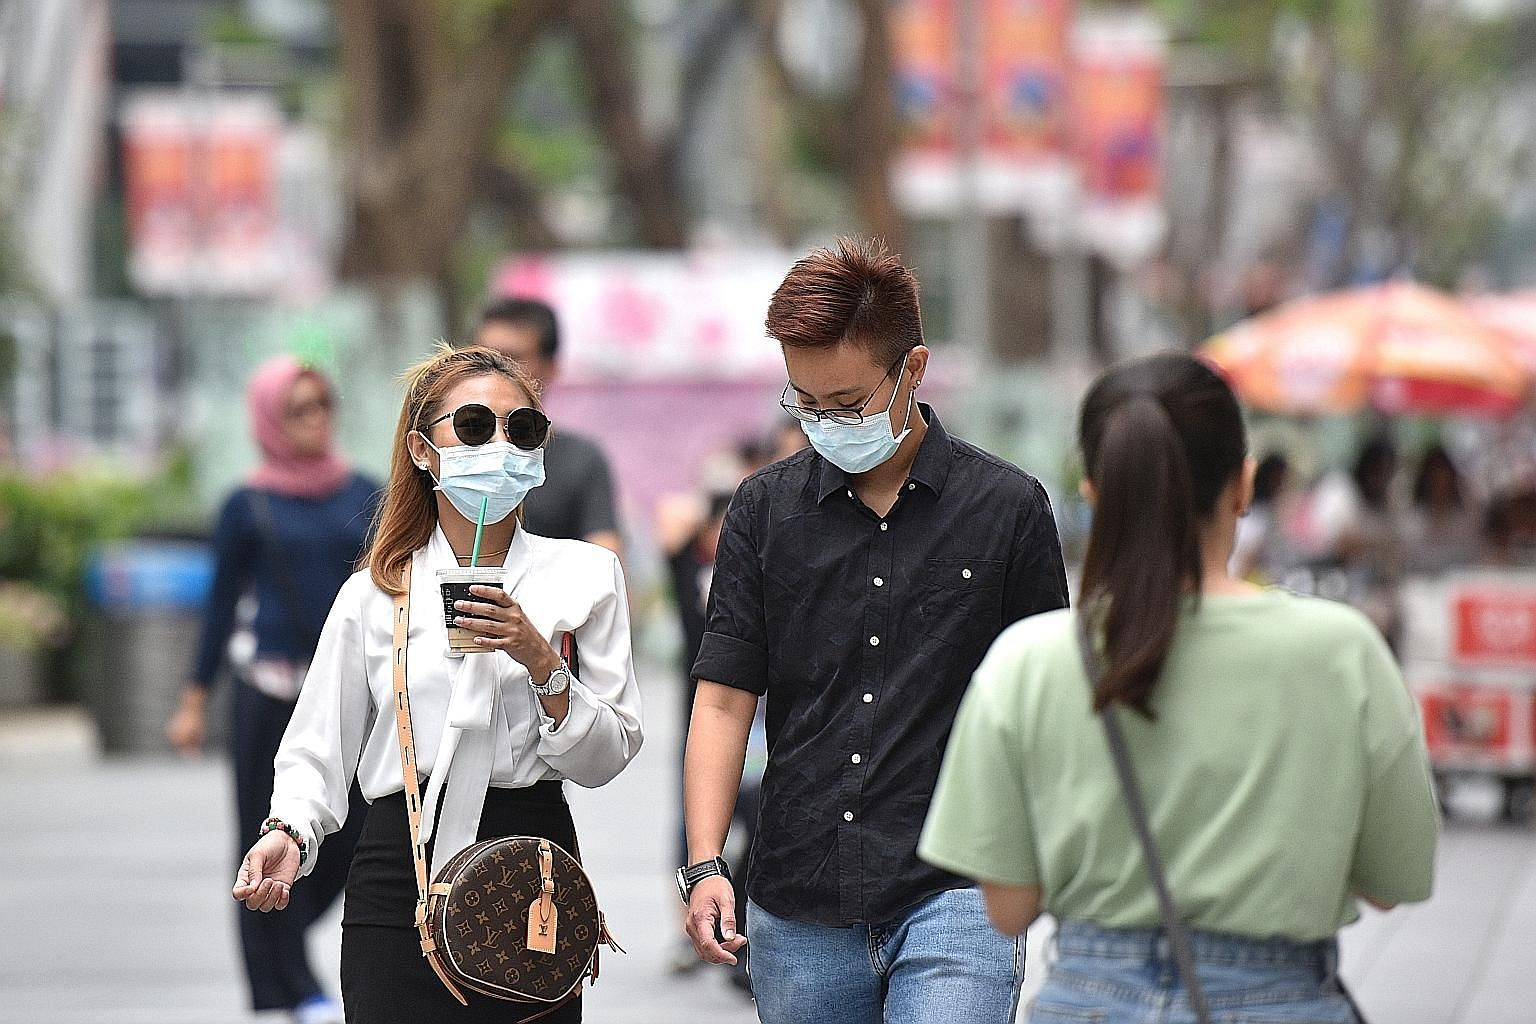 The generosity some Singaporeans have shown is not limited to government-issued masks, says the writer. There are stories of kindness popping up on social media of people giving away masks to others who may need them more.